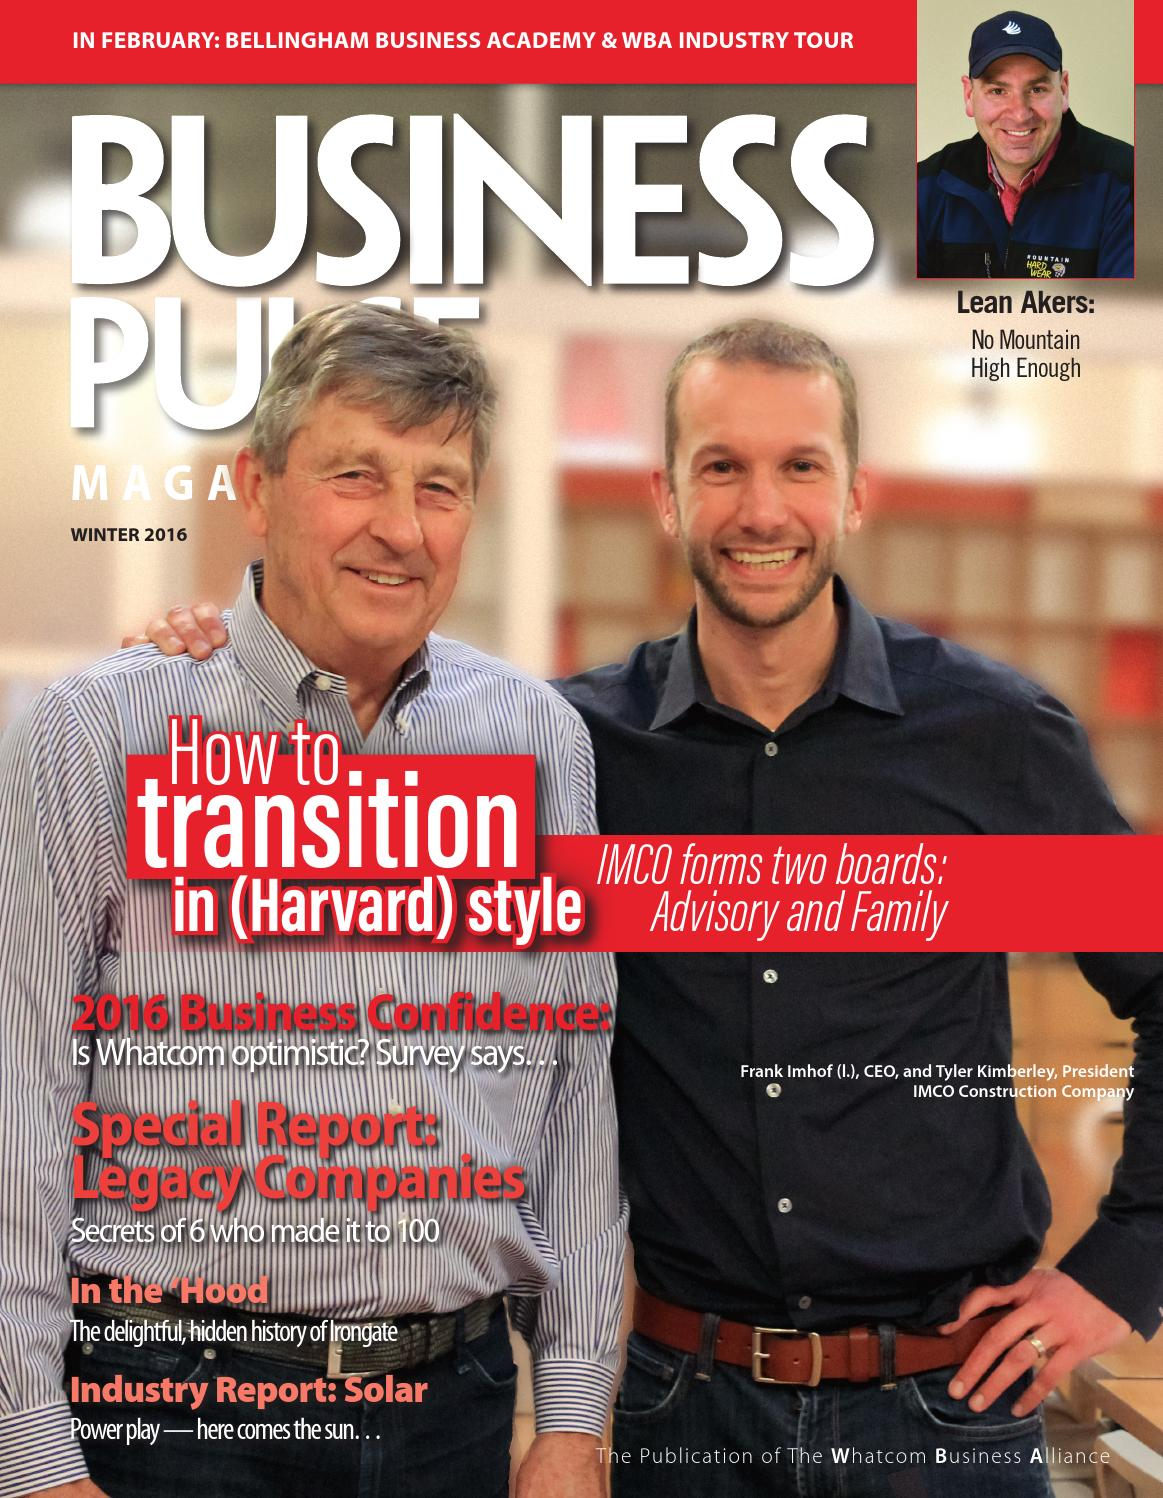 Business Pulse Magazine Winter 2016 By